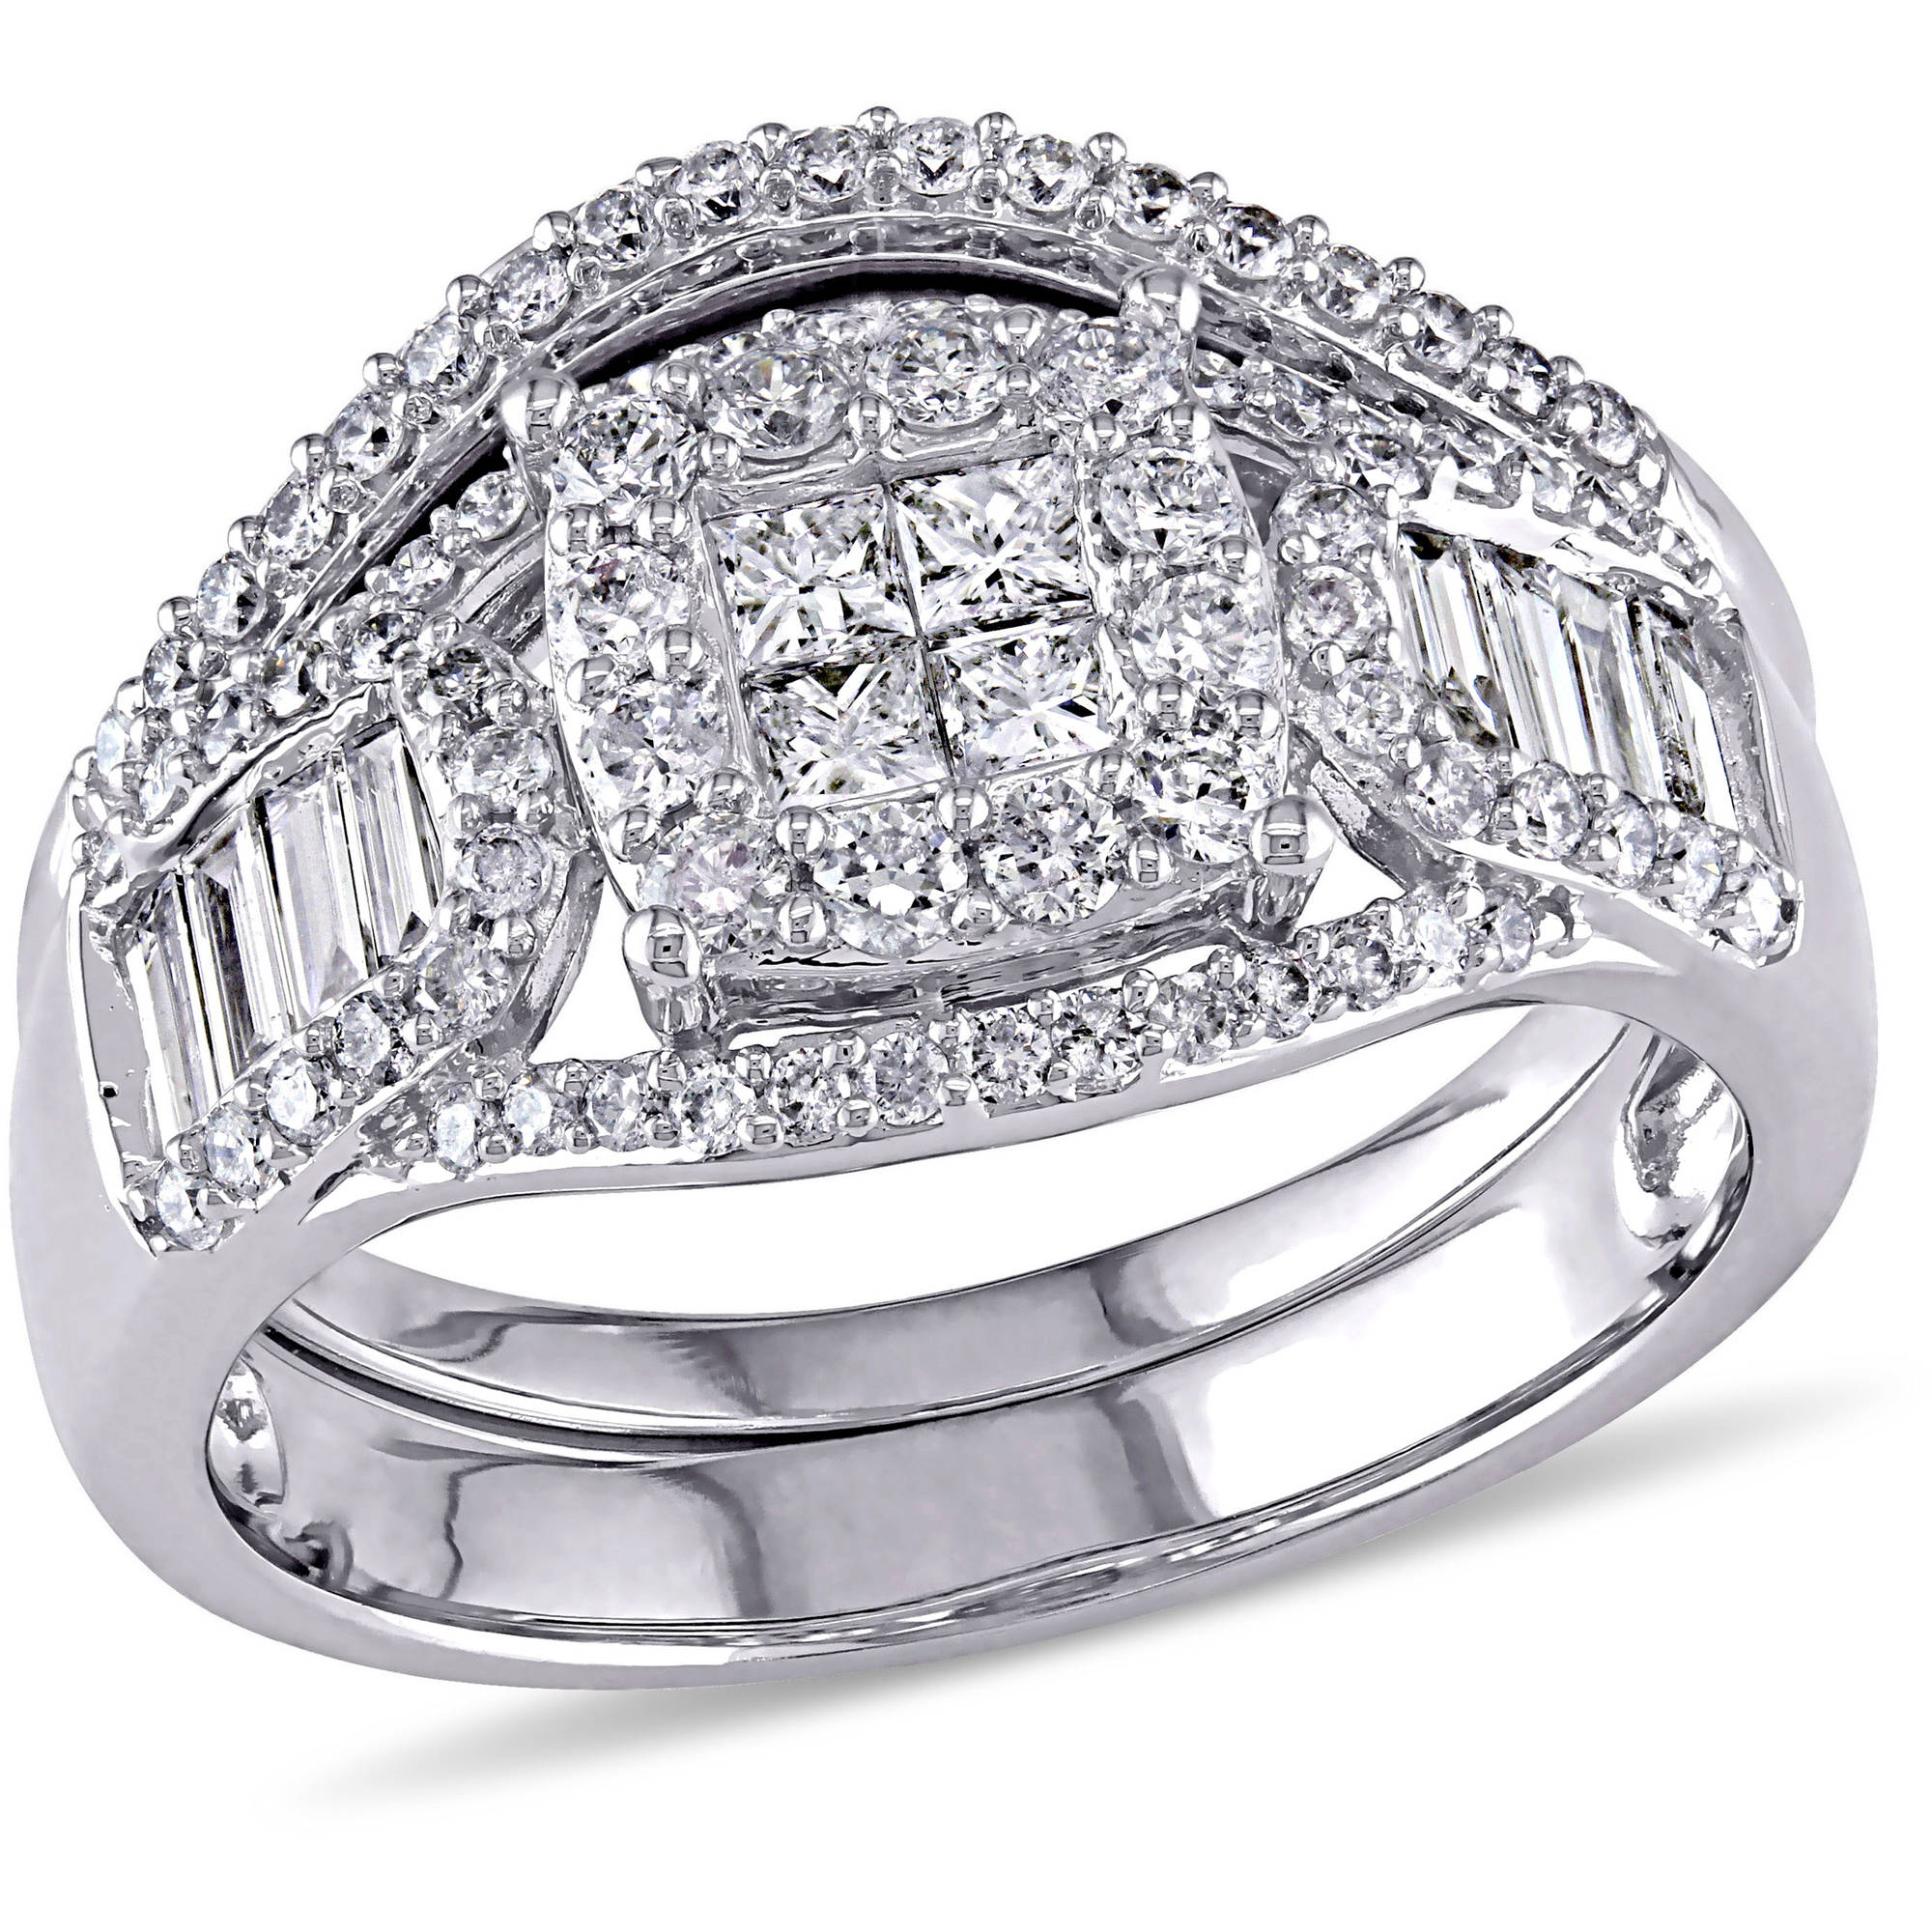 Miabella 1-1 5 Carat T.W. Princess with Parallel Baguette and Round-Cut Diamond 14kt White Gold Bridal Set by Miabella